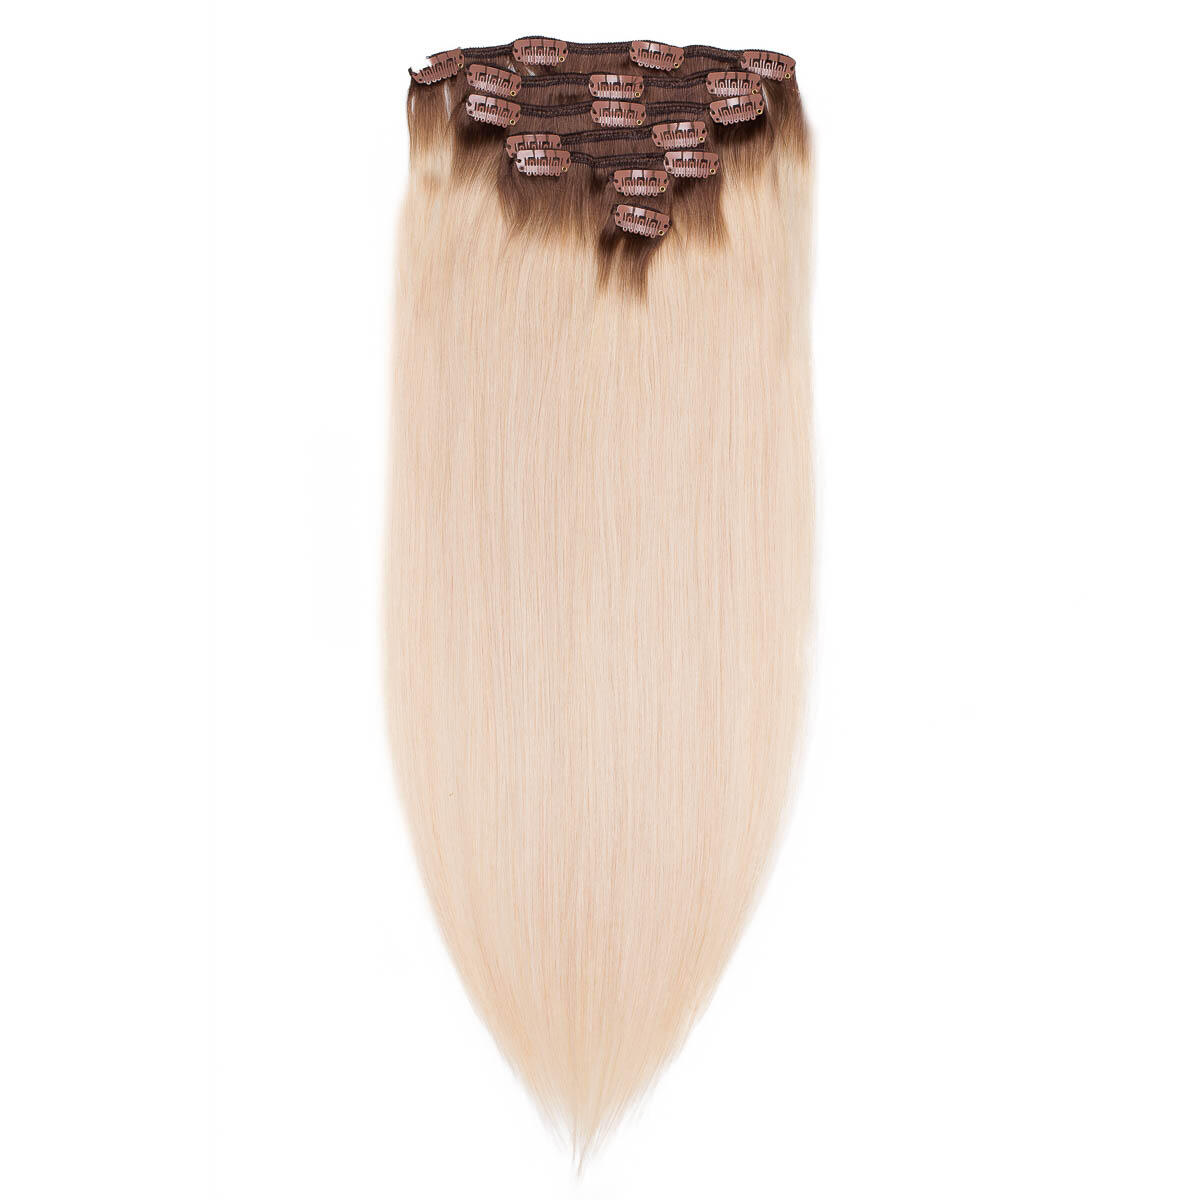 Clip-on Set Original 7 pieces R5.1/10.8 Medium Ash Blonde Root 50 cm